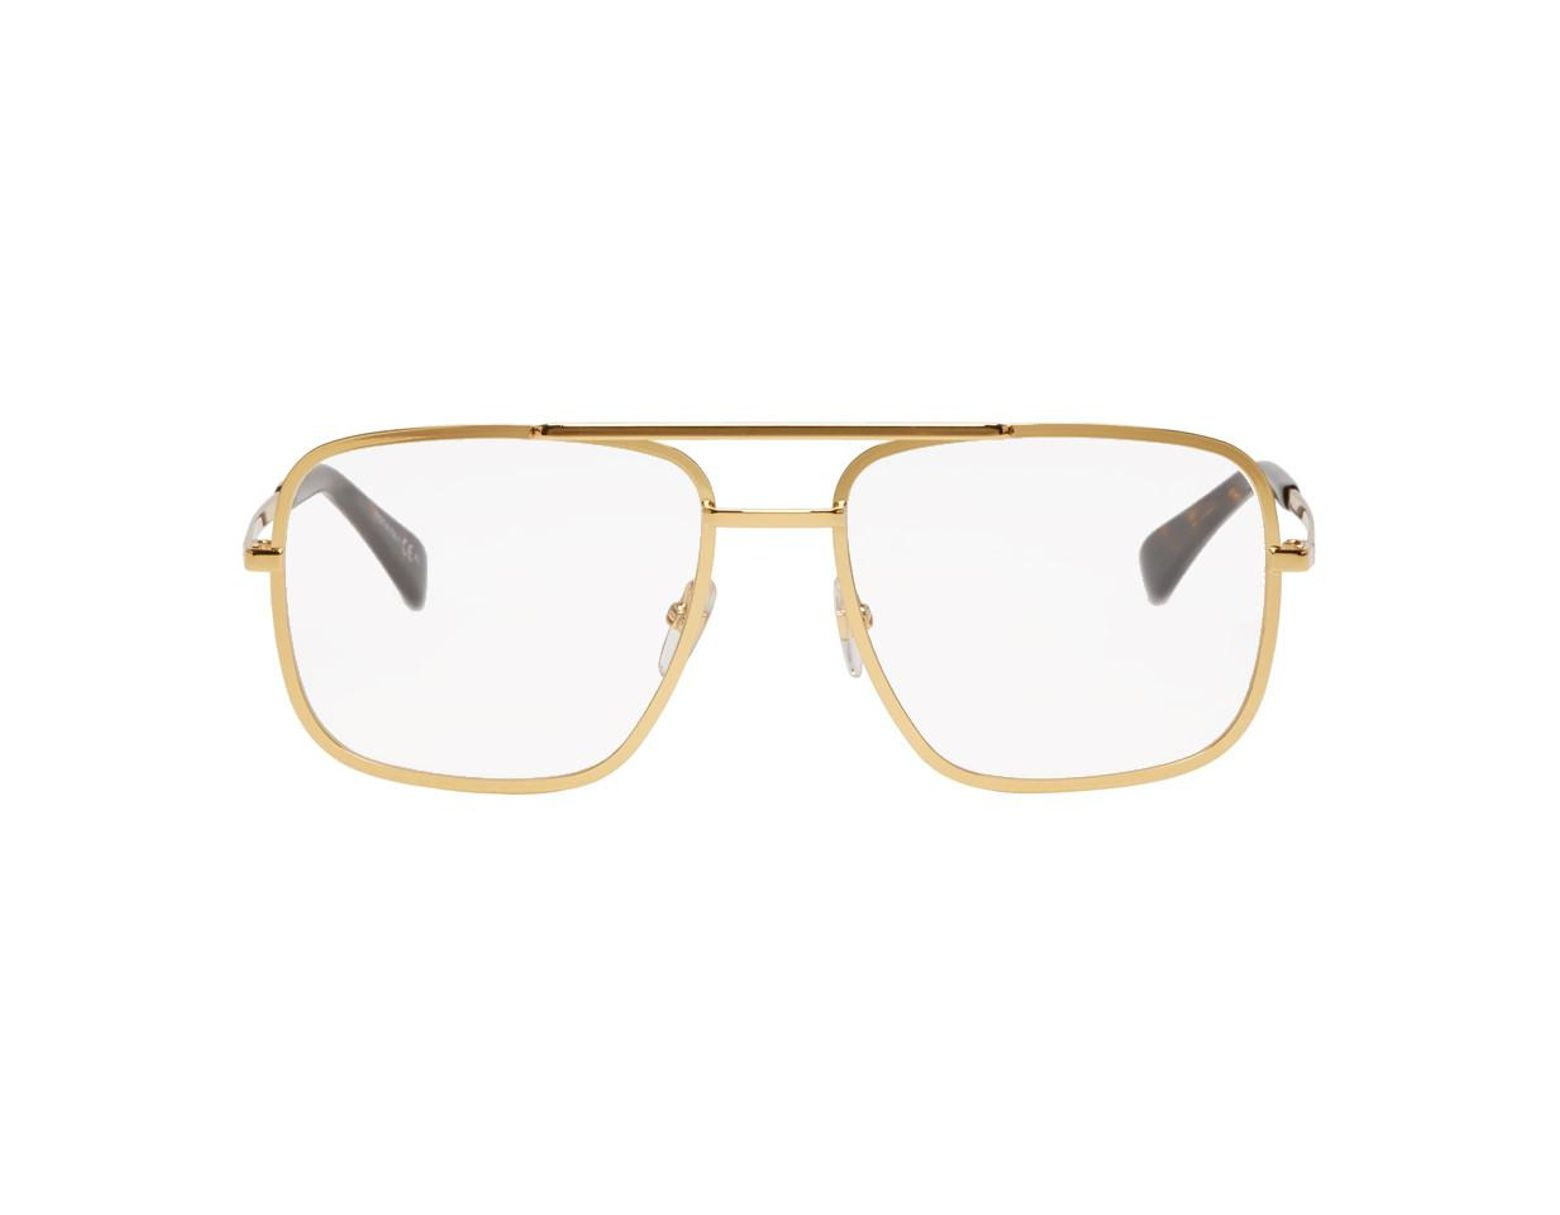 0d195c149526 Givenchy Gold Gv0098 Glasses in Metallic for Men - Lyst